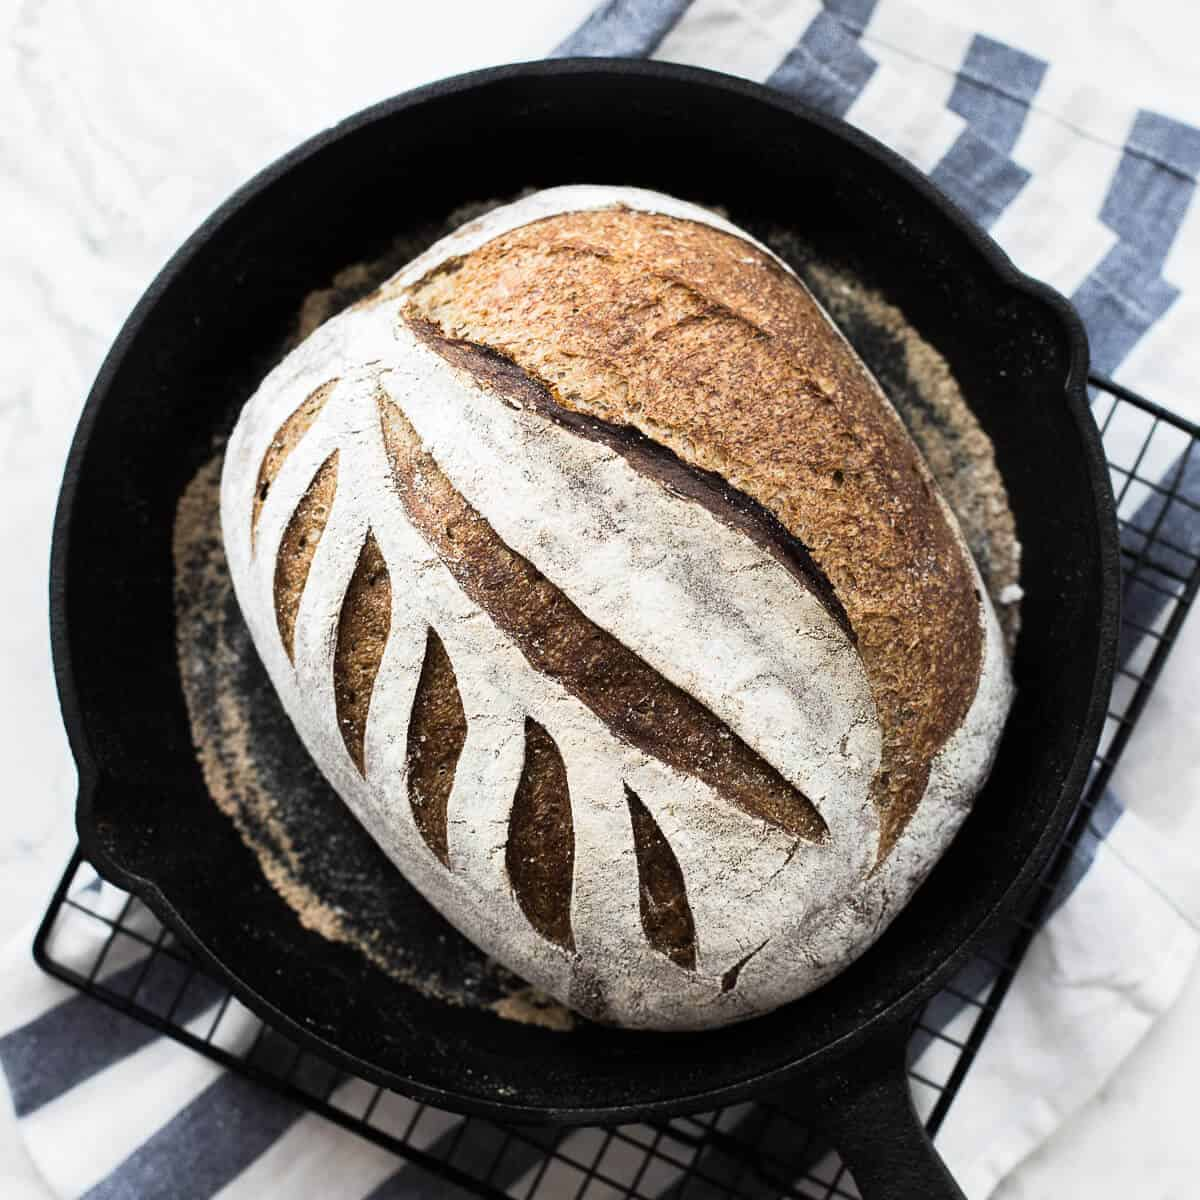 flaxseed meal sourdough in a black skillet on a wire rack and blue and white striped kitchen towel